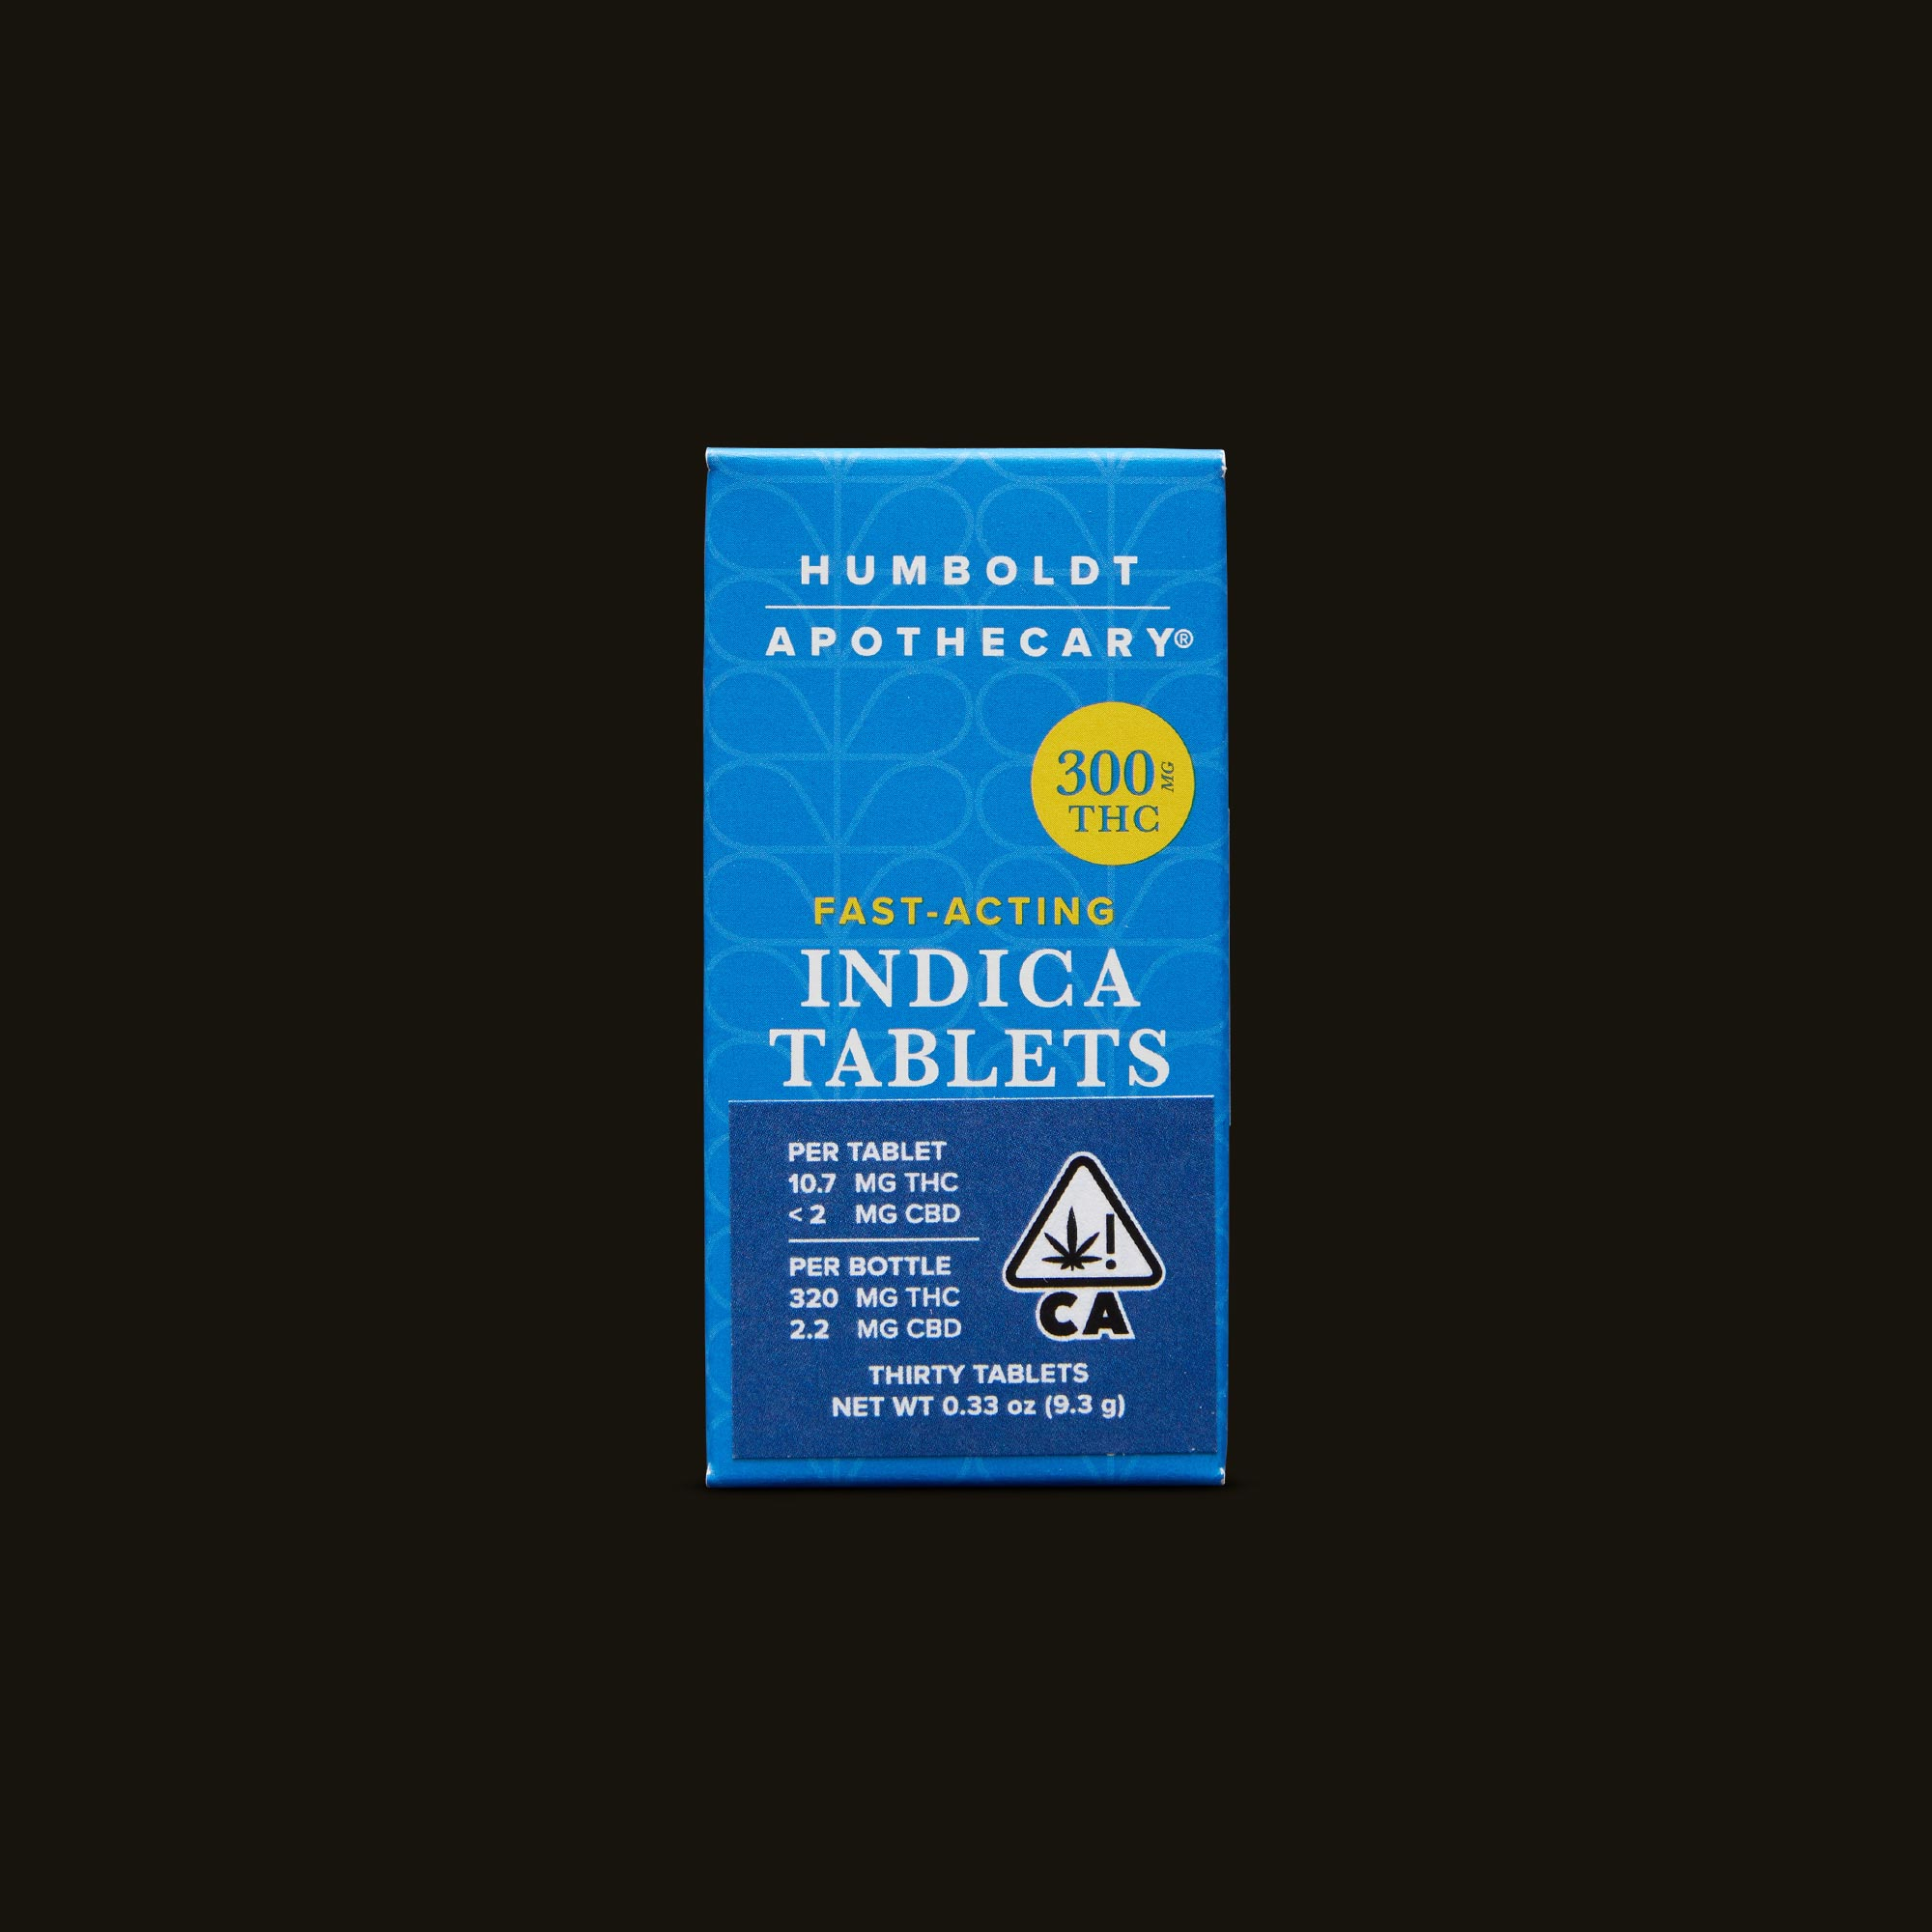 Humboldt Apothecary Indica Tablets Front Packaging